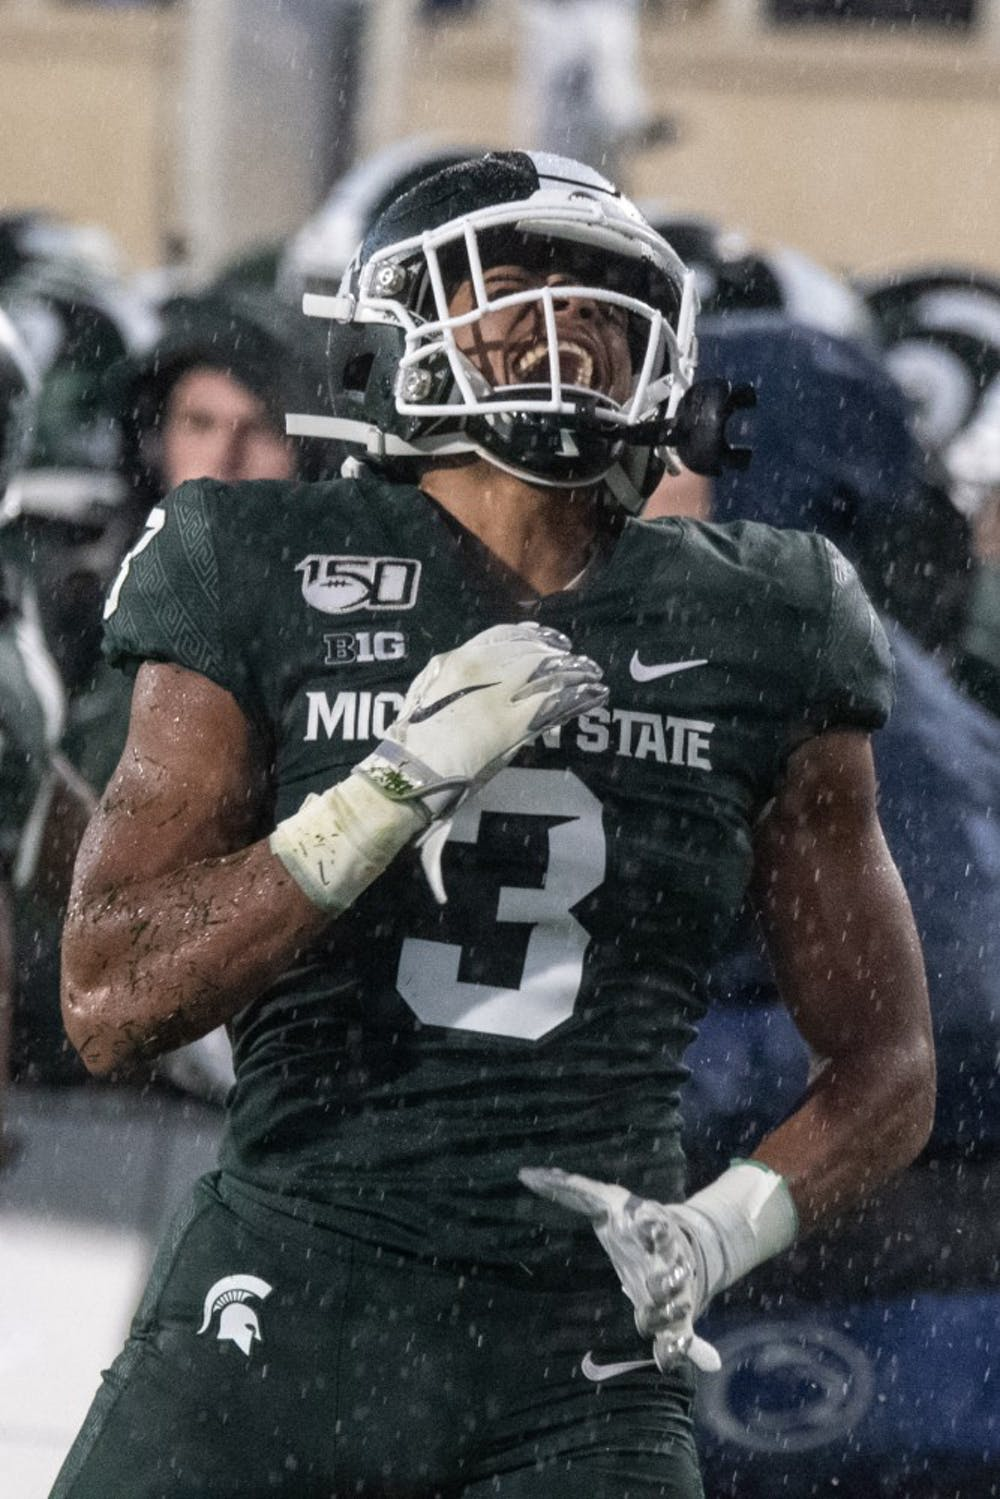 Sophomore safety Xavier Henderson (3) screams during the game against Penn State Oct. 26, 2019 at Spartan Stadium.